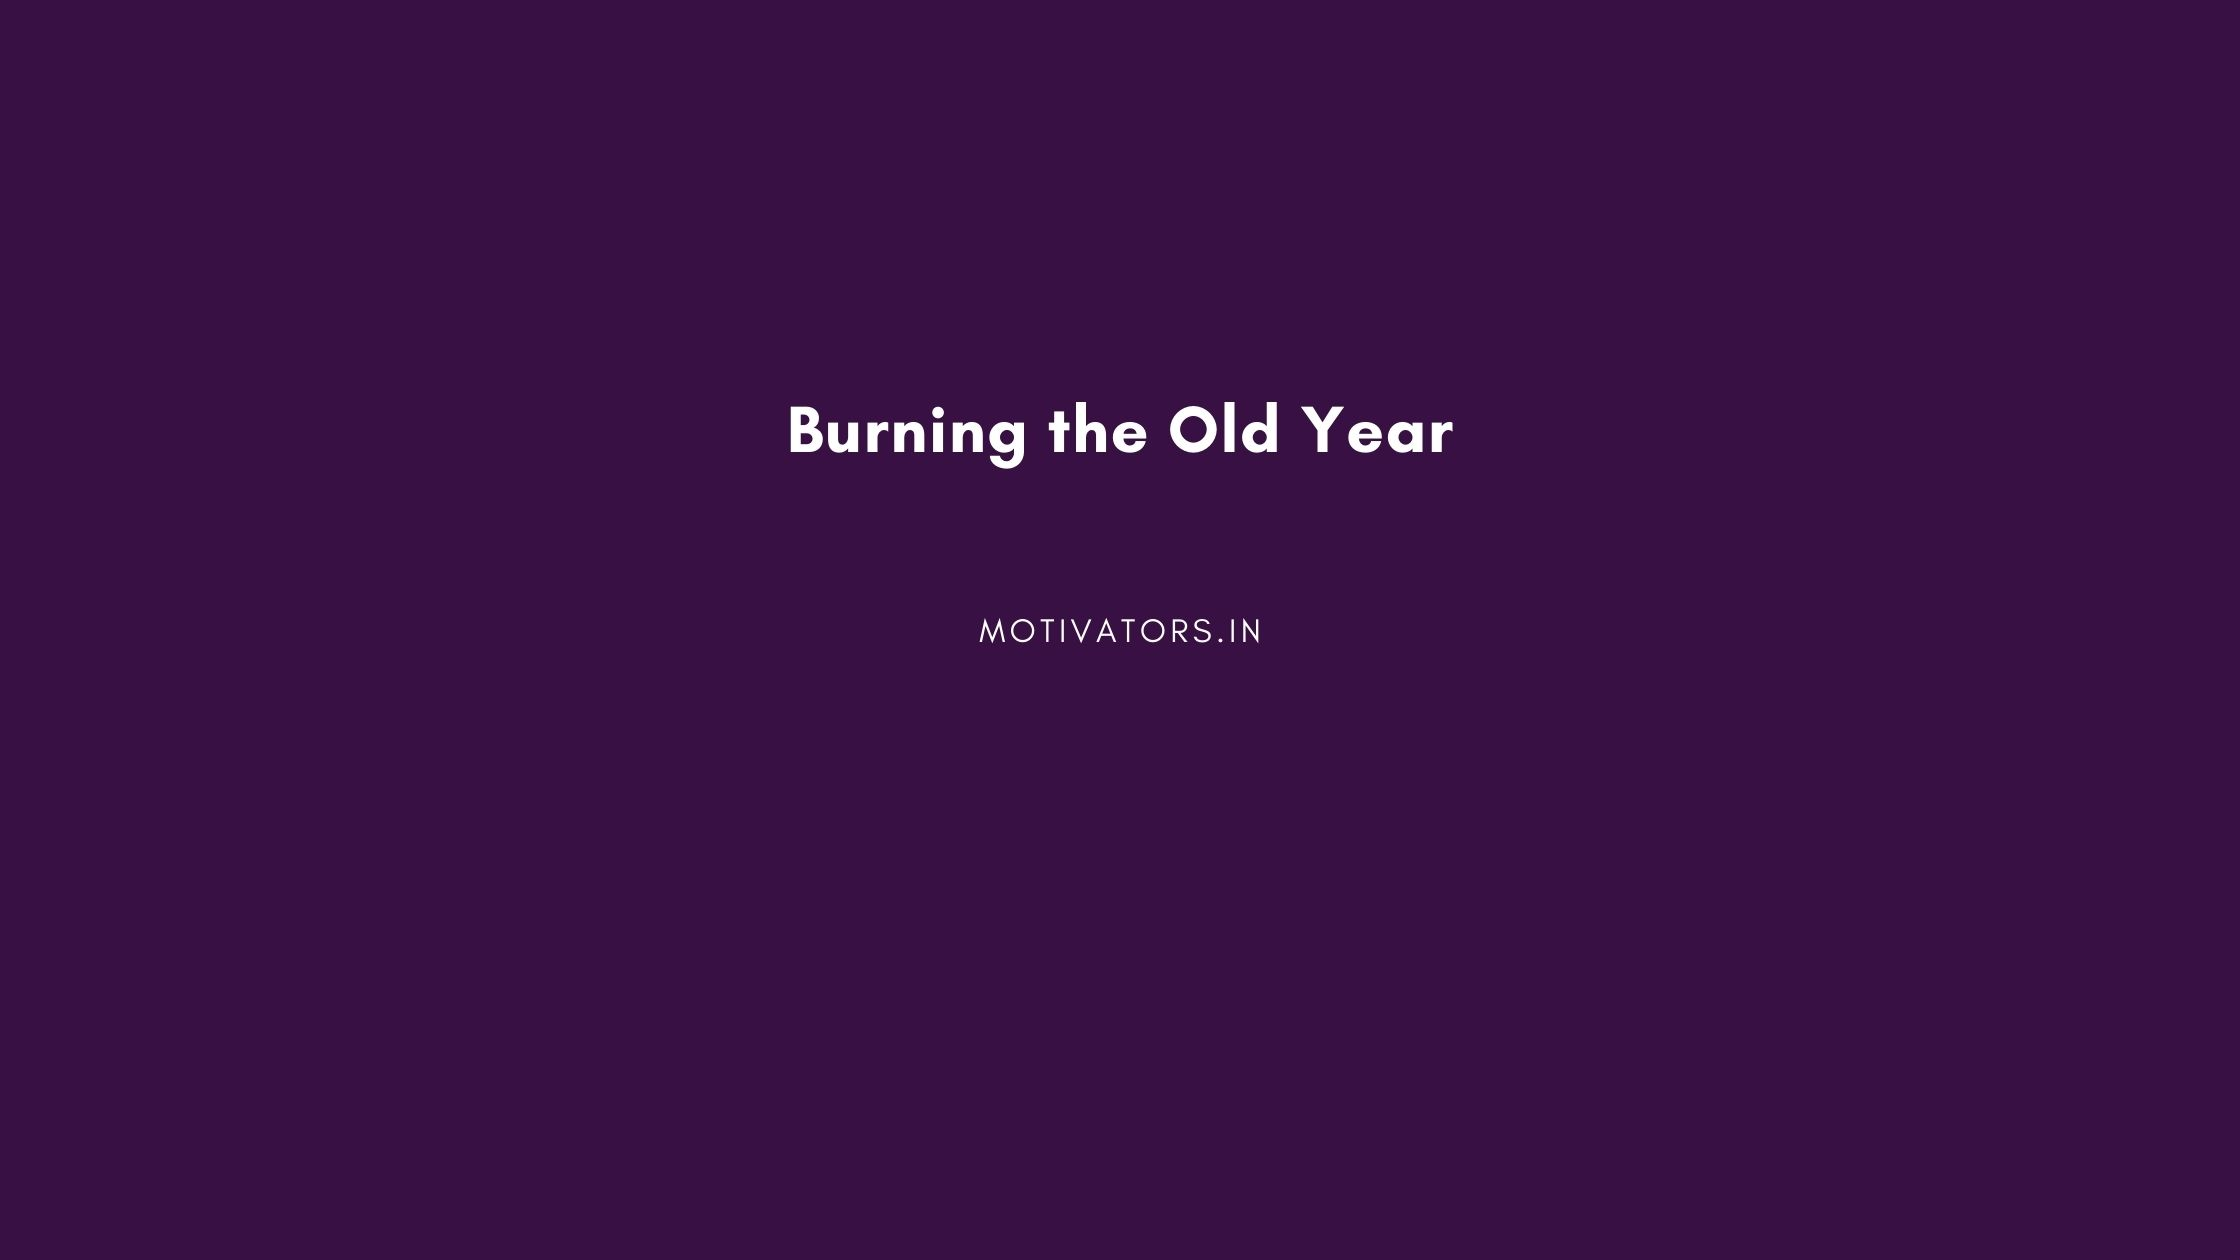 Burning the Old Year